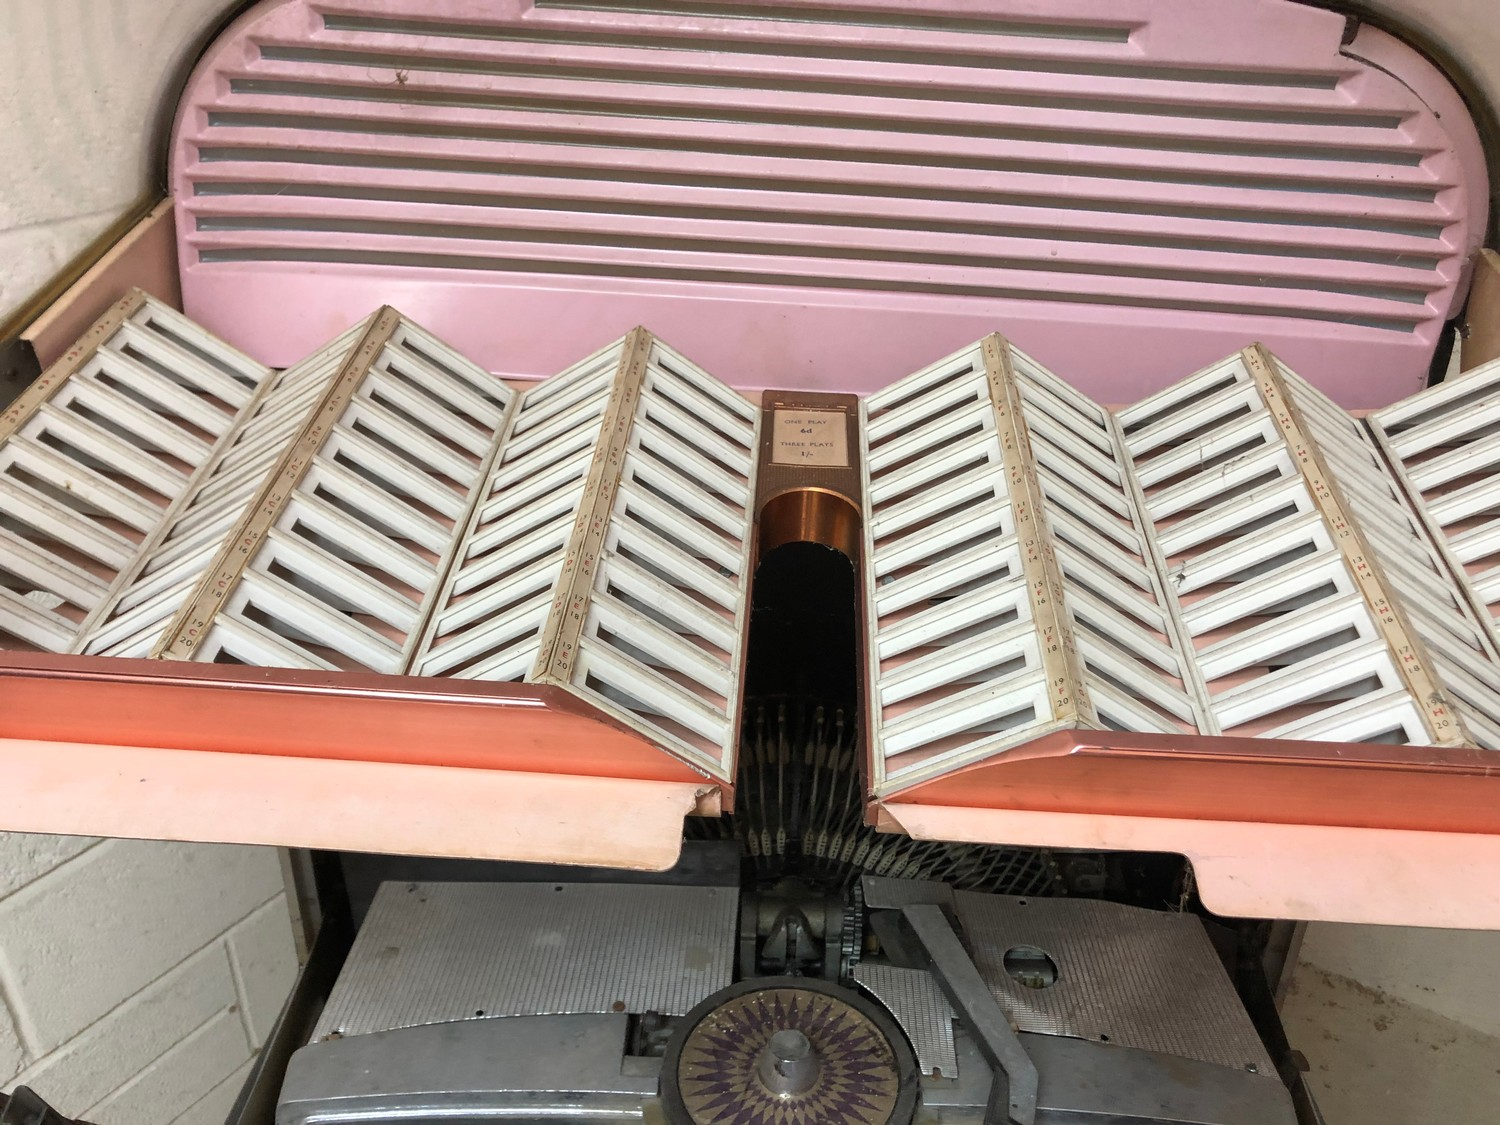 """Rare 1950s Bal-AMi 200 Jukebox in """"Barn Find"""" condition and in need of complete restoration, - Image 18 of 27"""